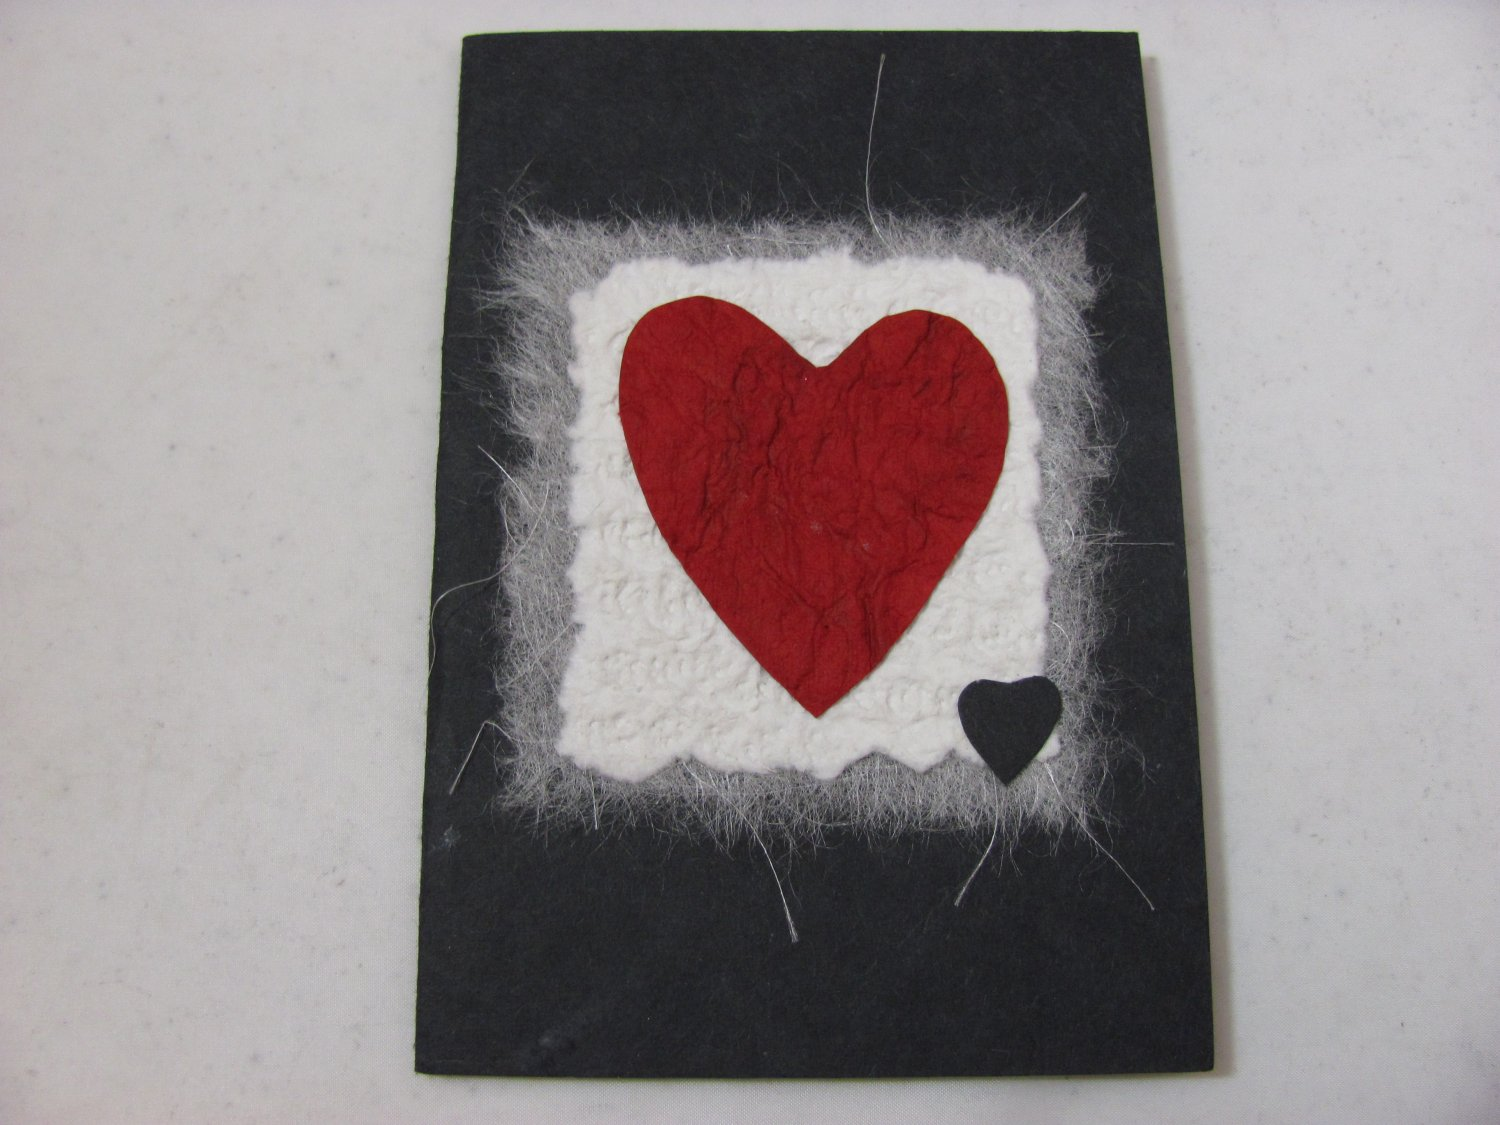 (HRT 18) Large & Small Hearts Handmade Greeting Card